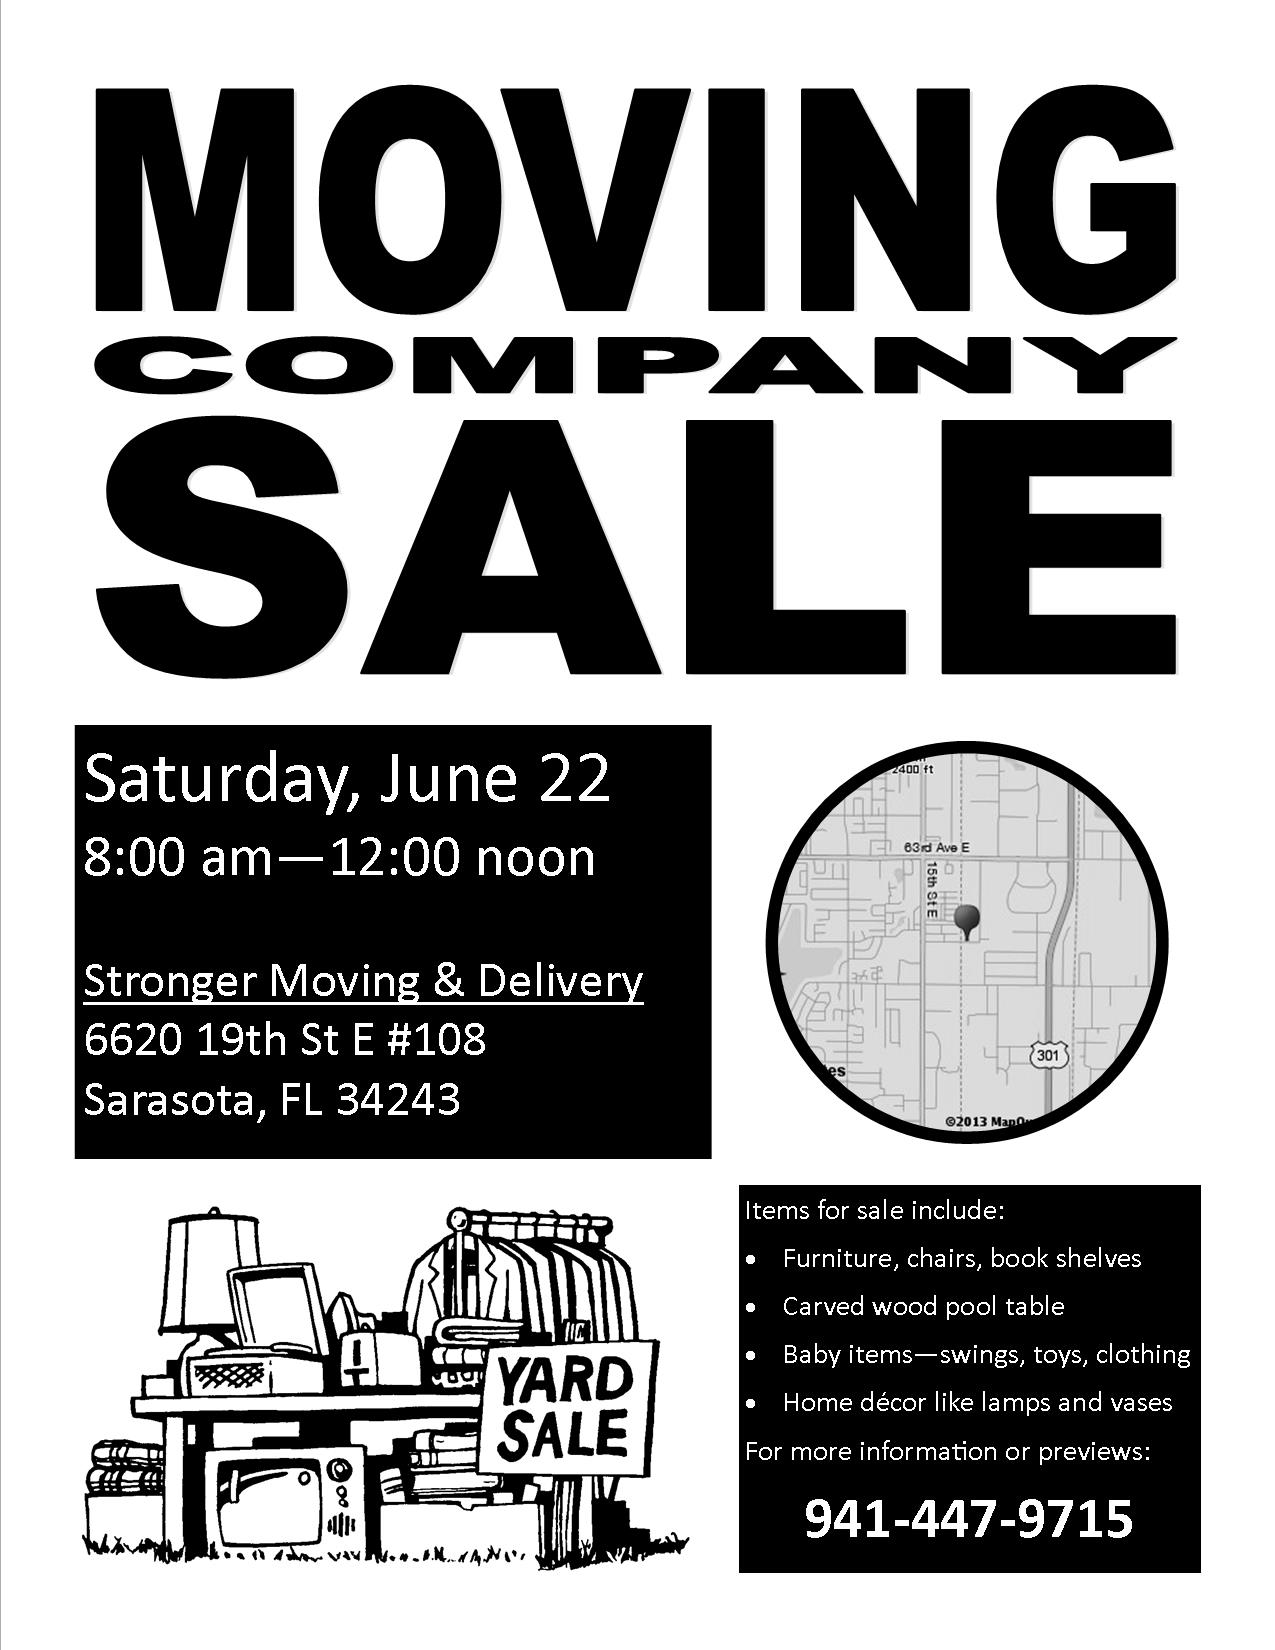 Having A Moving Company Sale This Saturday 6 22 Smooth